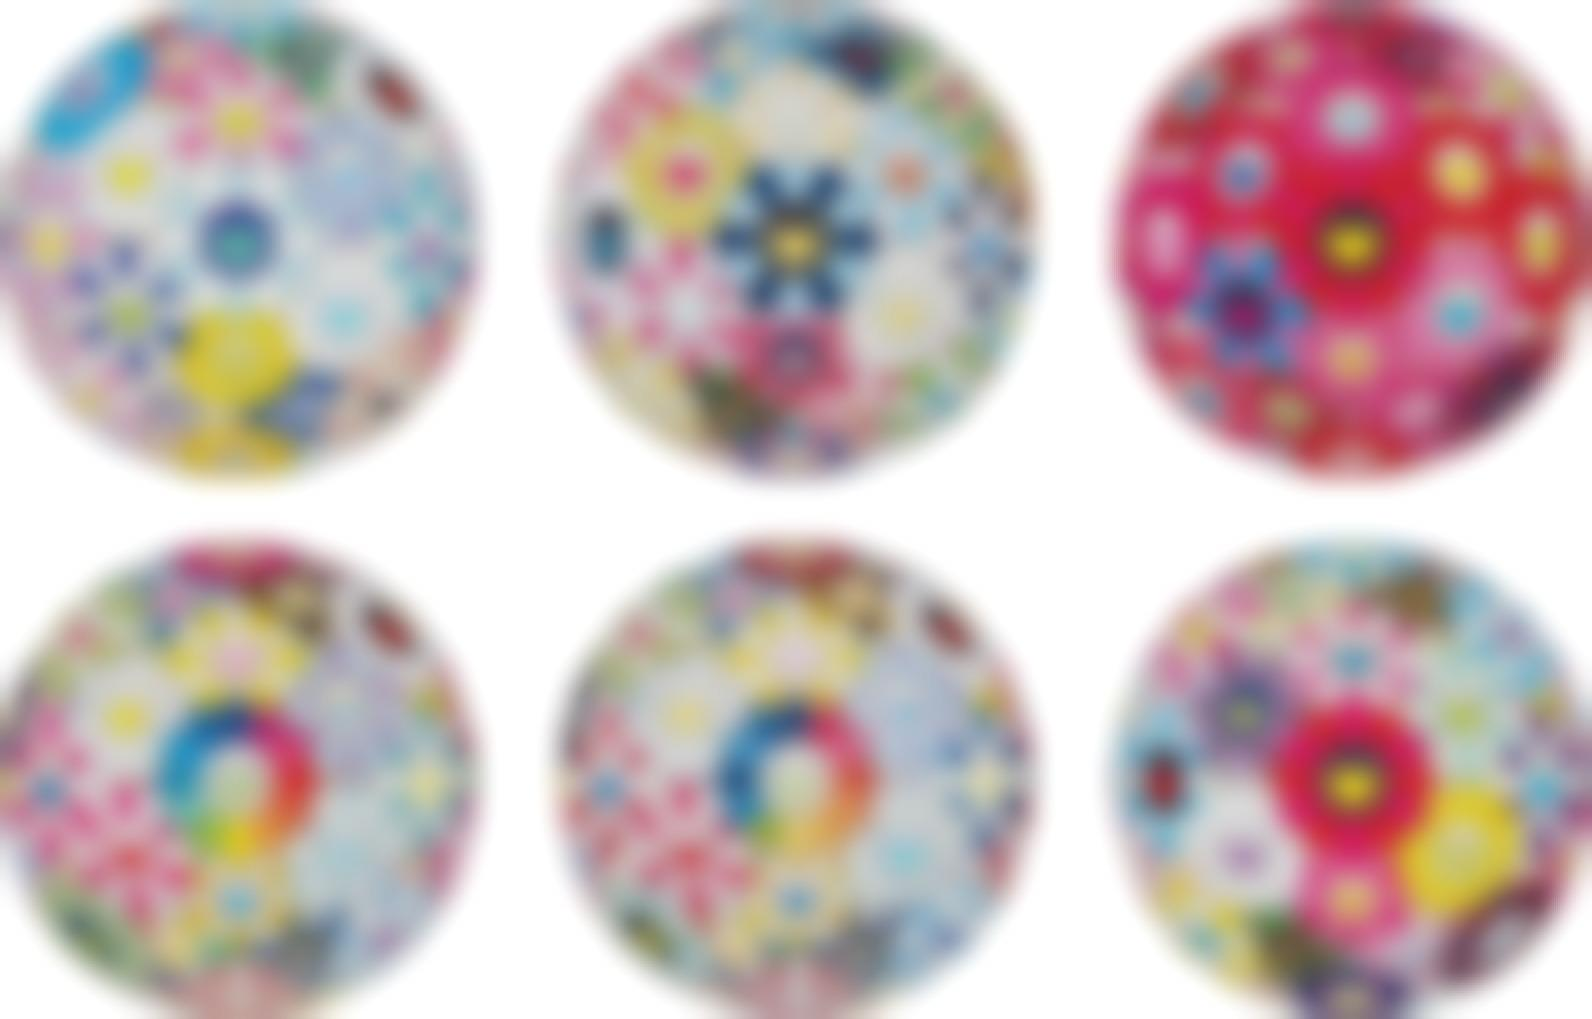 Takashi Murakami-Cosmic Power; The Flowerballs Painterly Challenge; Thoughts On Picasso; Flowerball: Want To Hold You; Scenery With A Rainbow In The Midst; And Flowerball: Open Your Hands Wide-2016